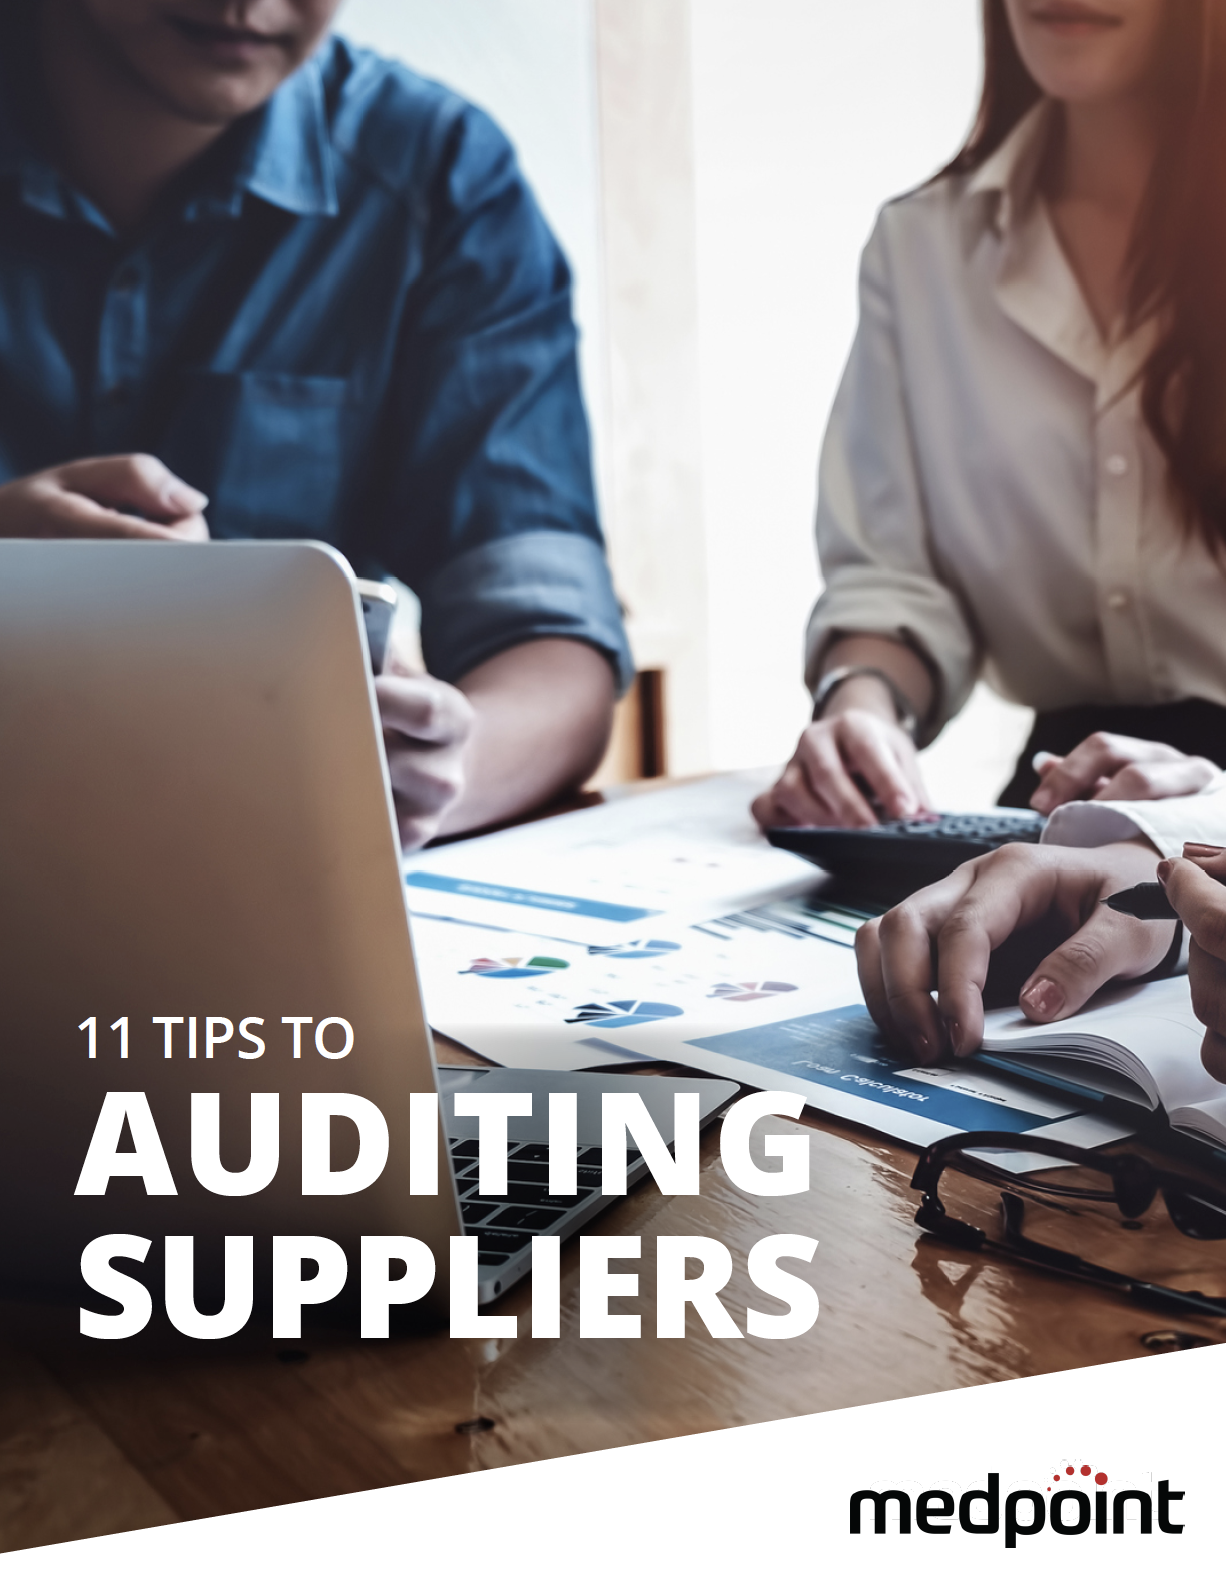 11 Tips to Auditing Suppliers | Medpoint